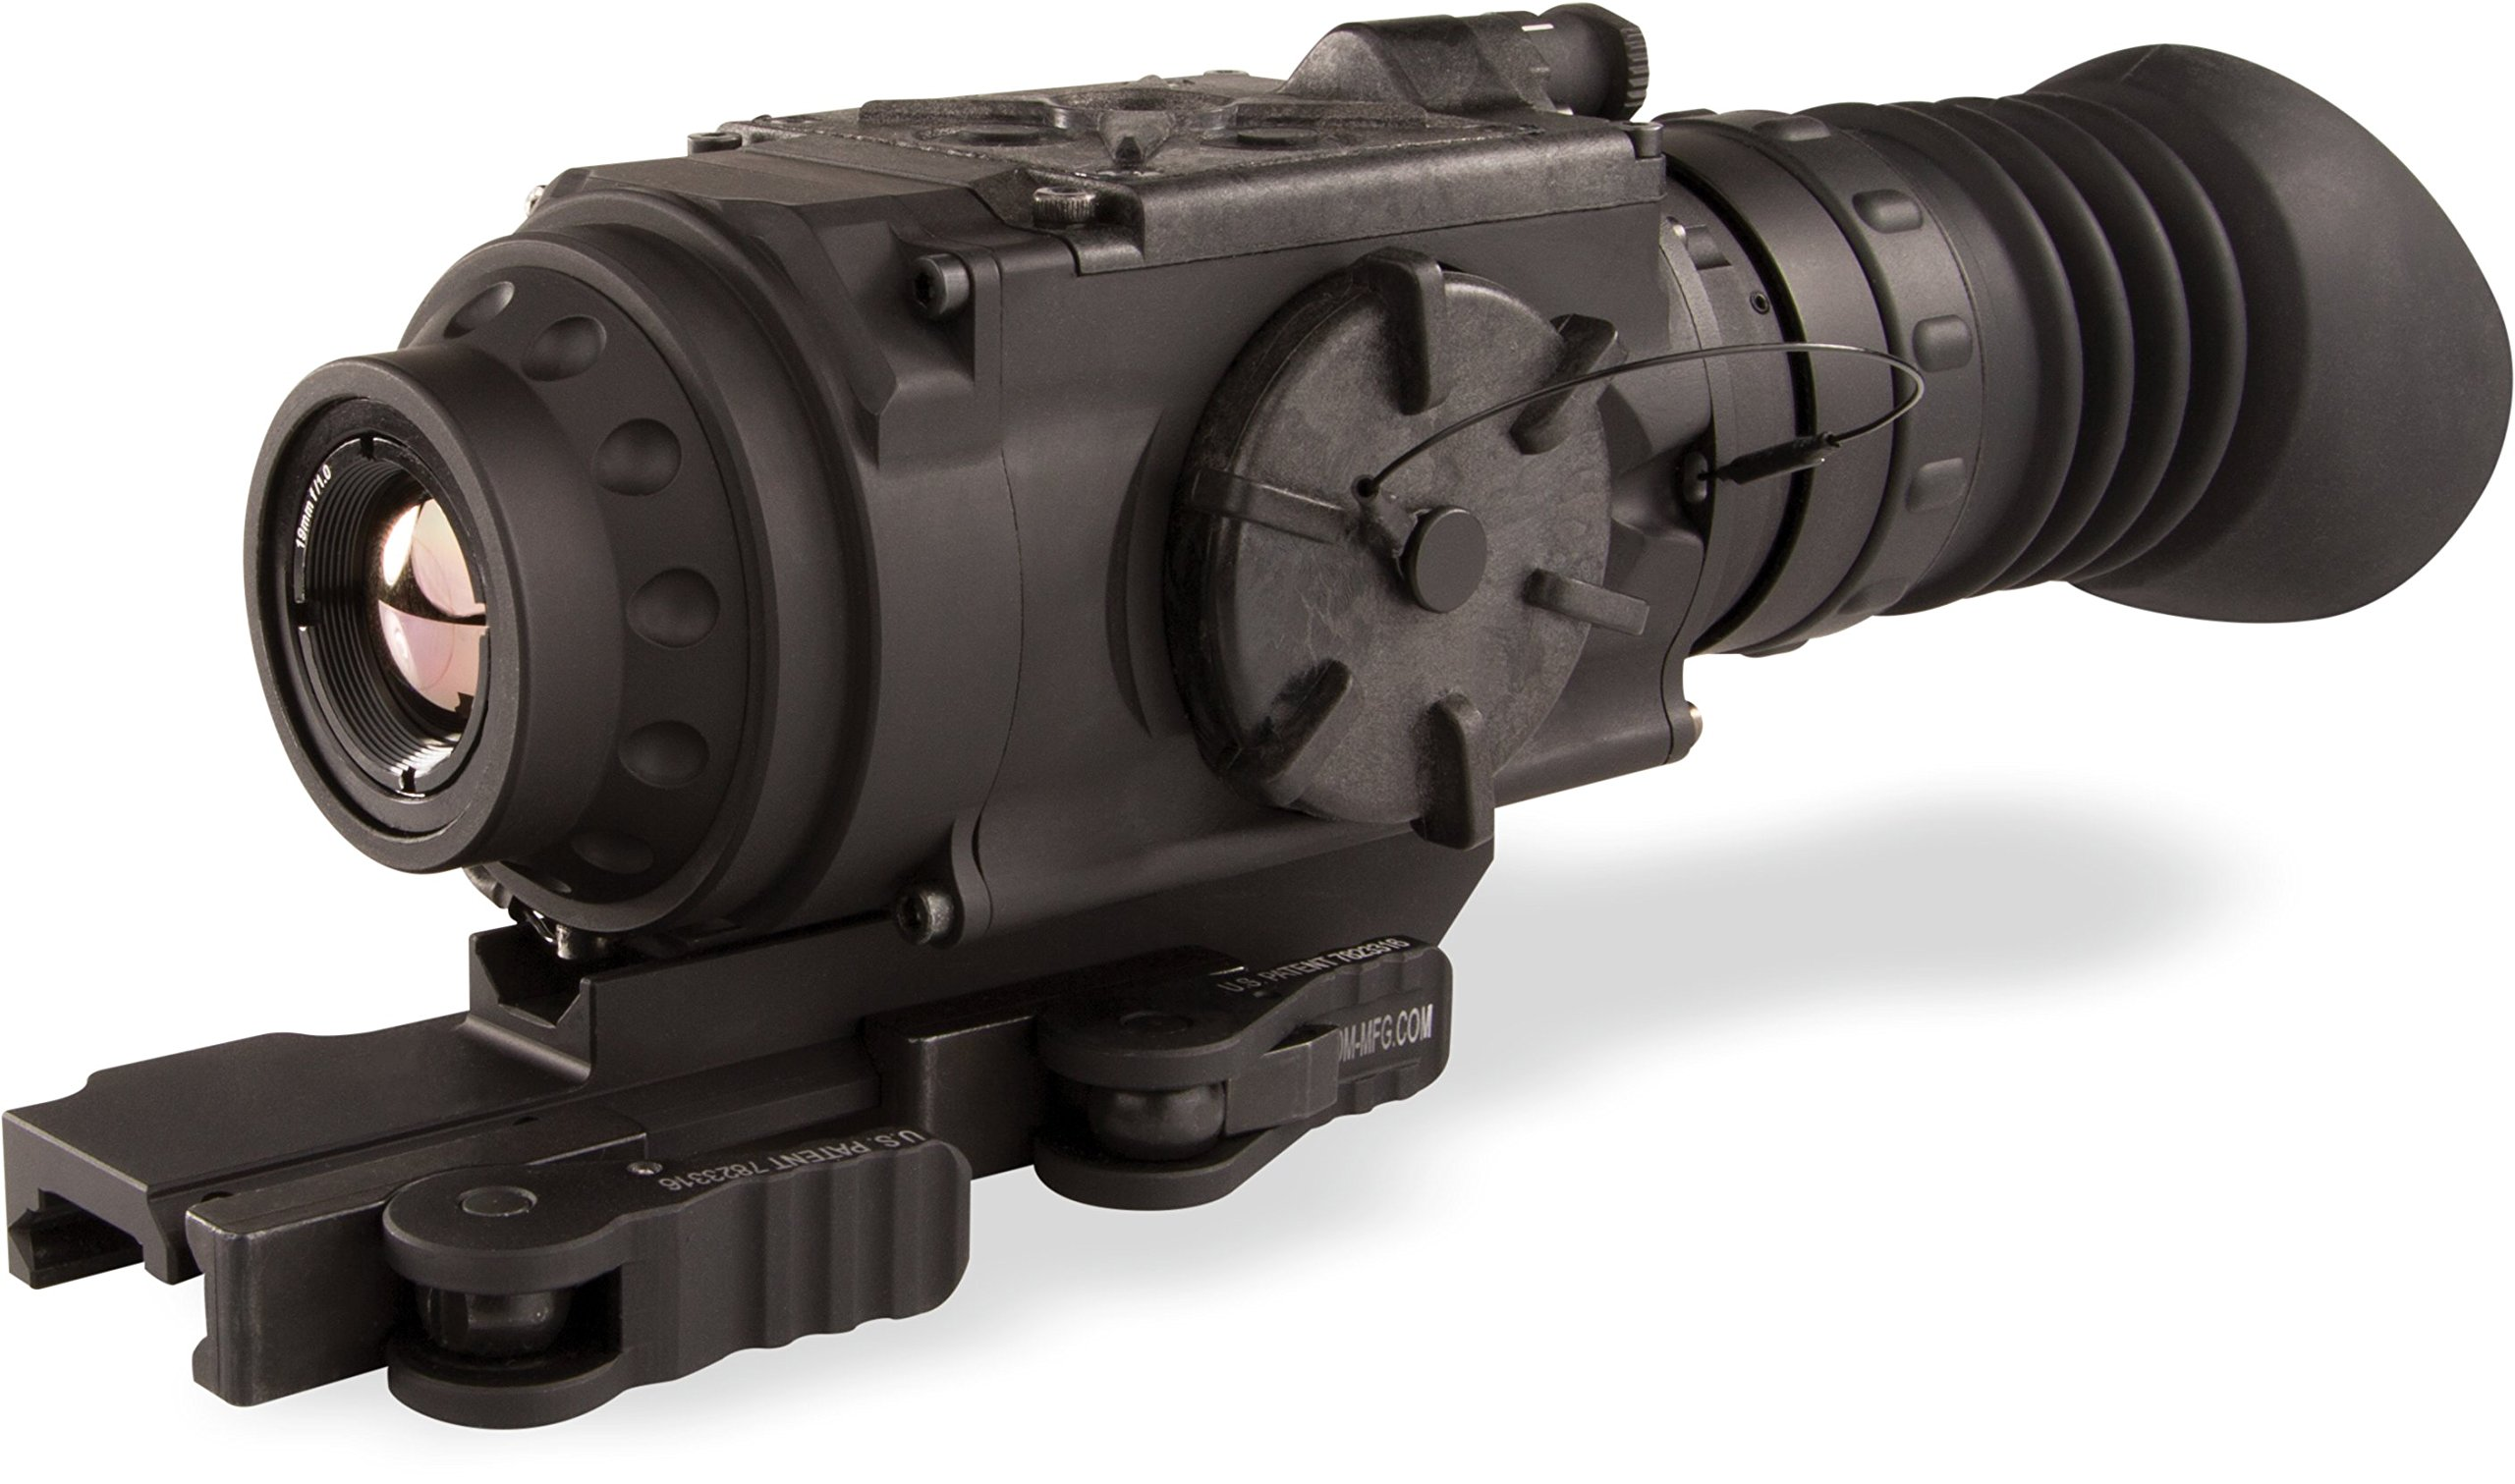 FLIR Thermosight Pro PTS233 1.5-6x19mm Thermal Imaging Rifle Scope with Boson 320x256 12 micron 60Hz Core by FLIR Systems, Inc.